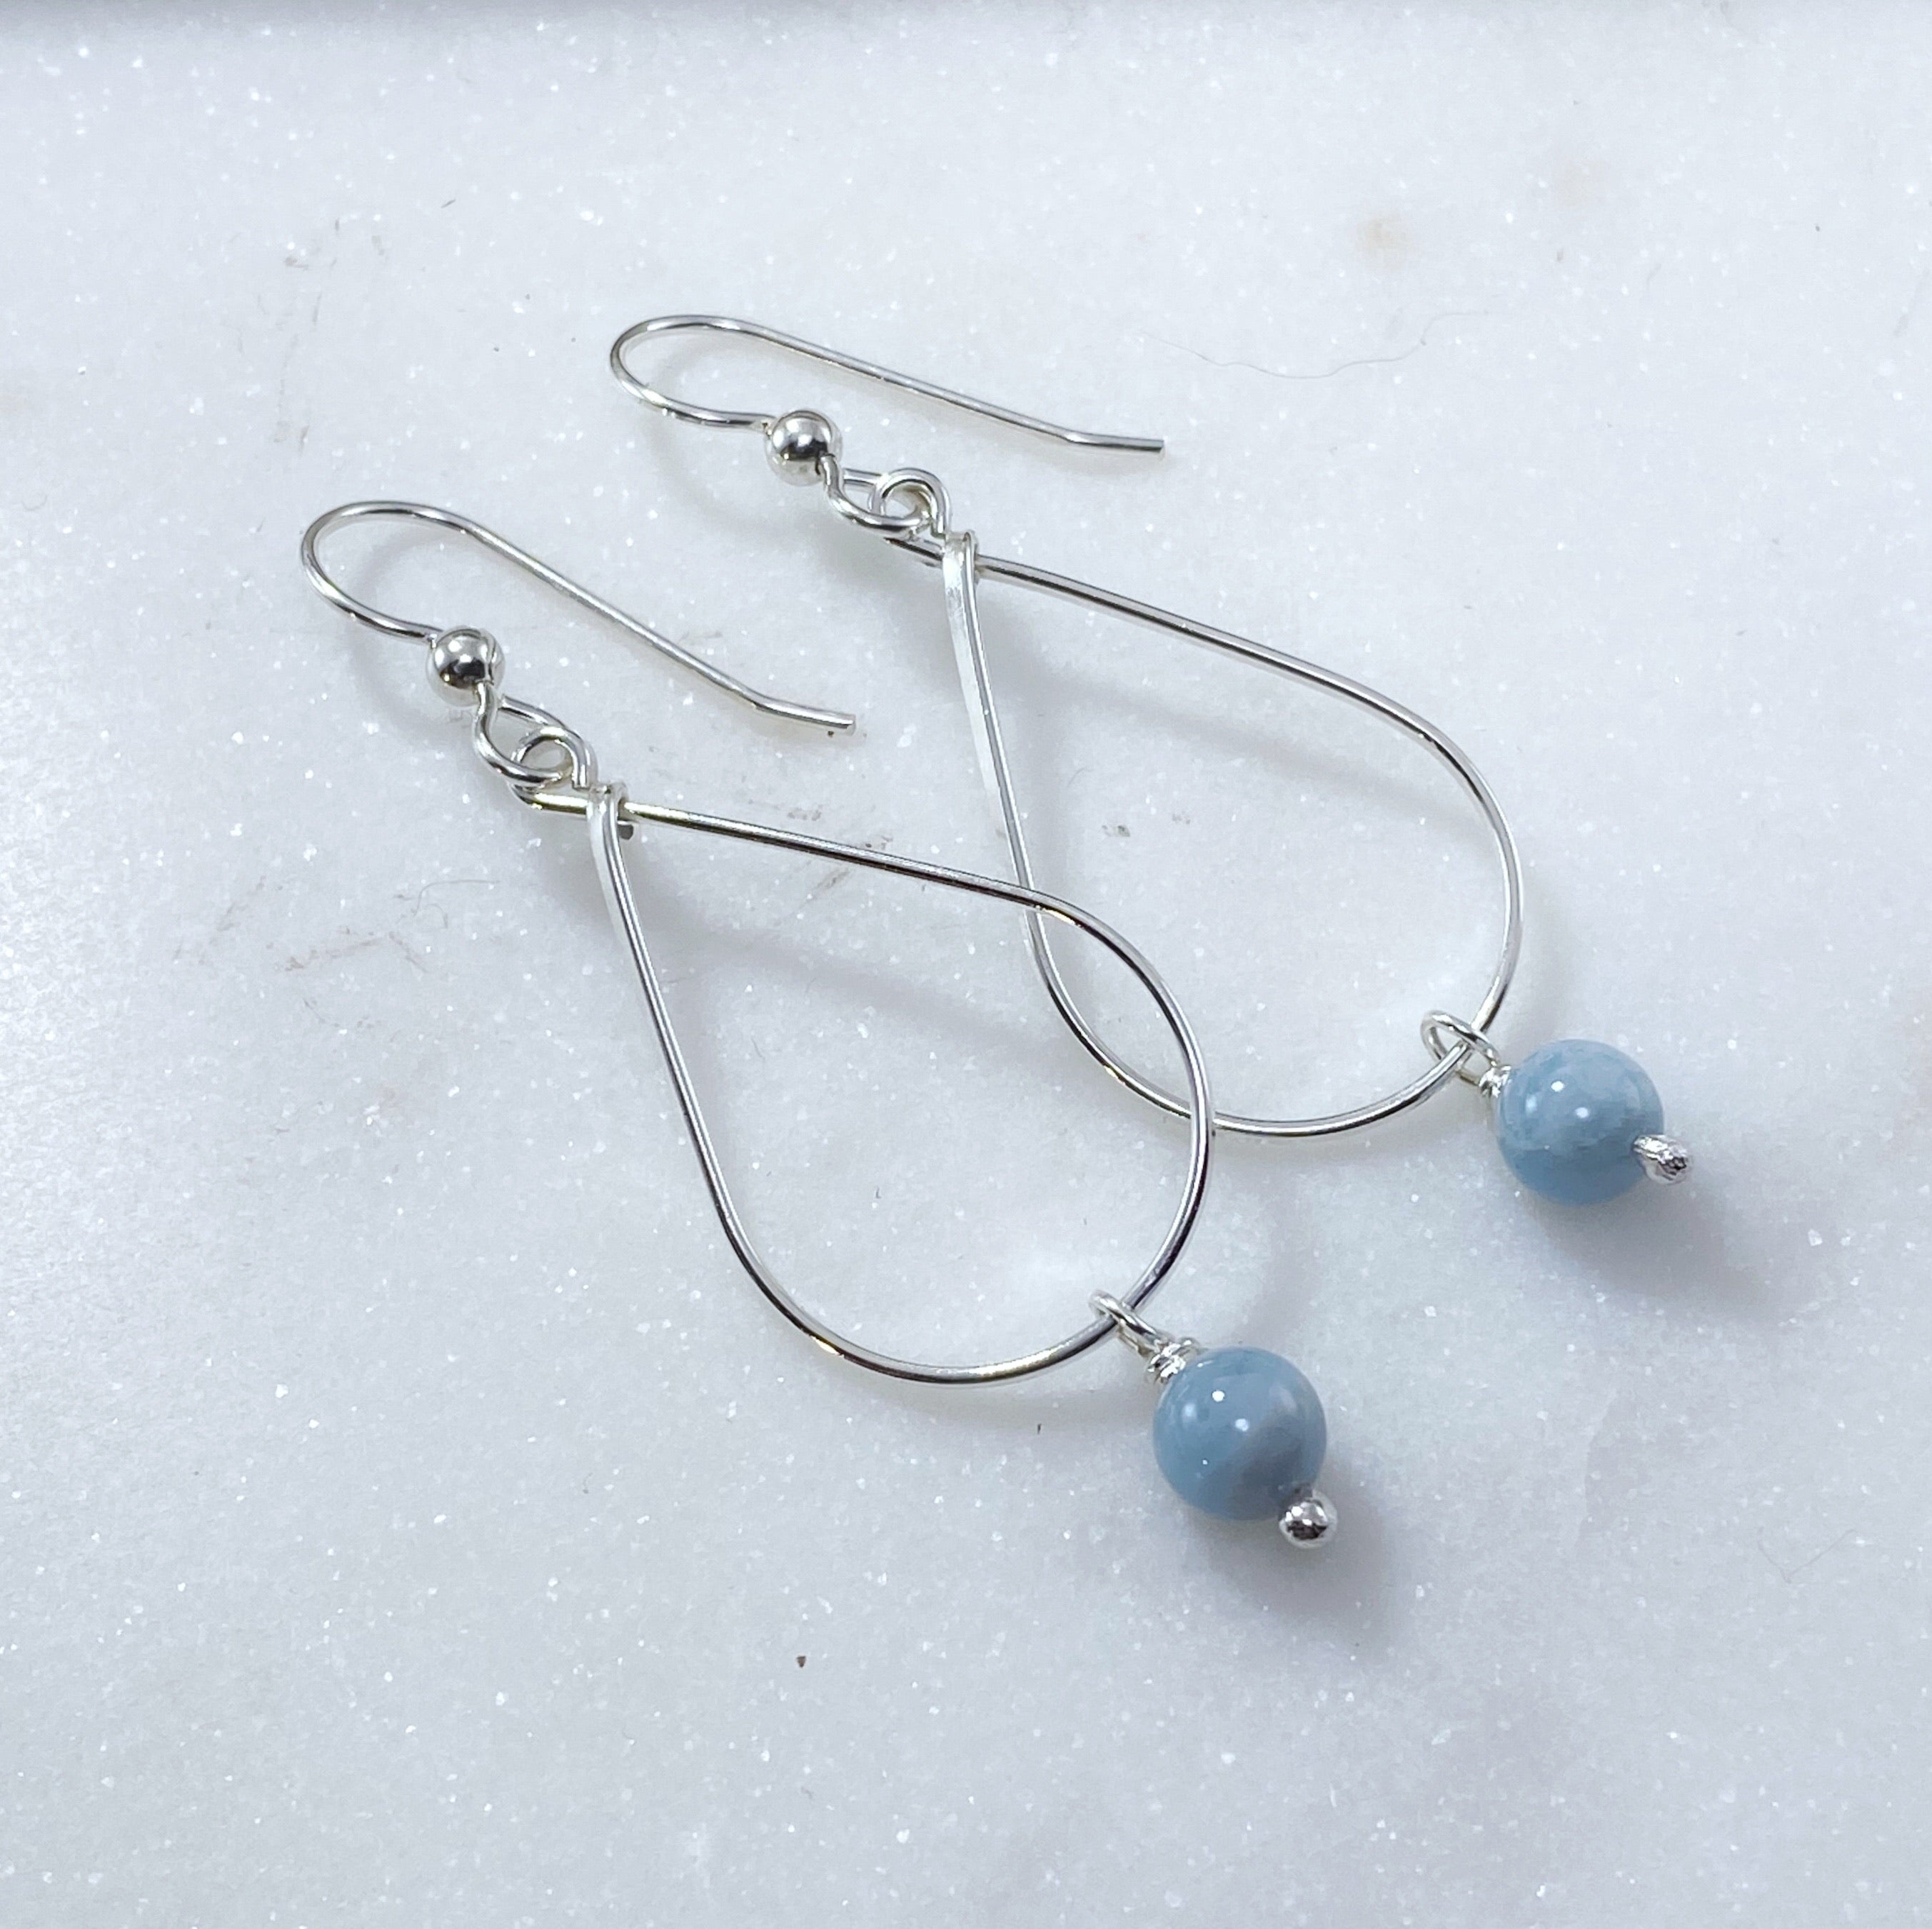 Sterling silver and aquamarine teardrop earrings